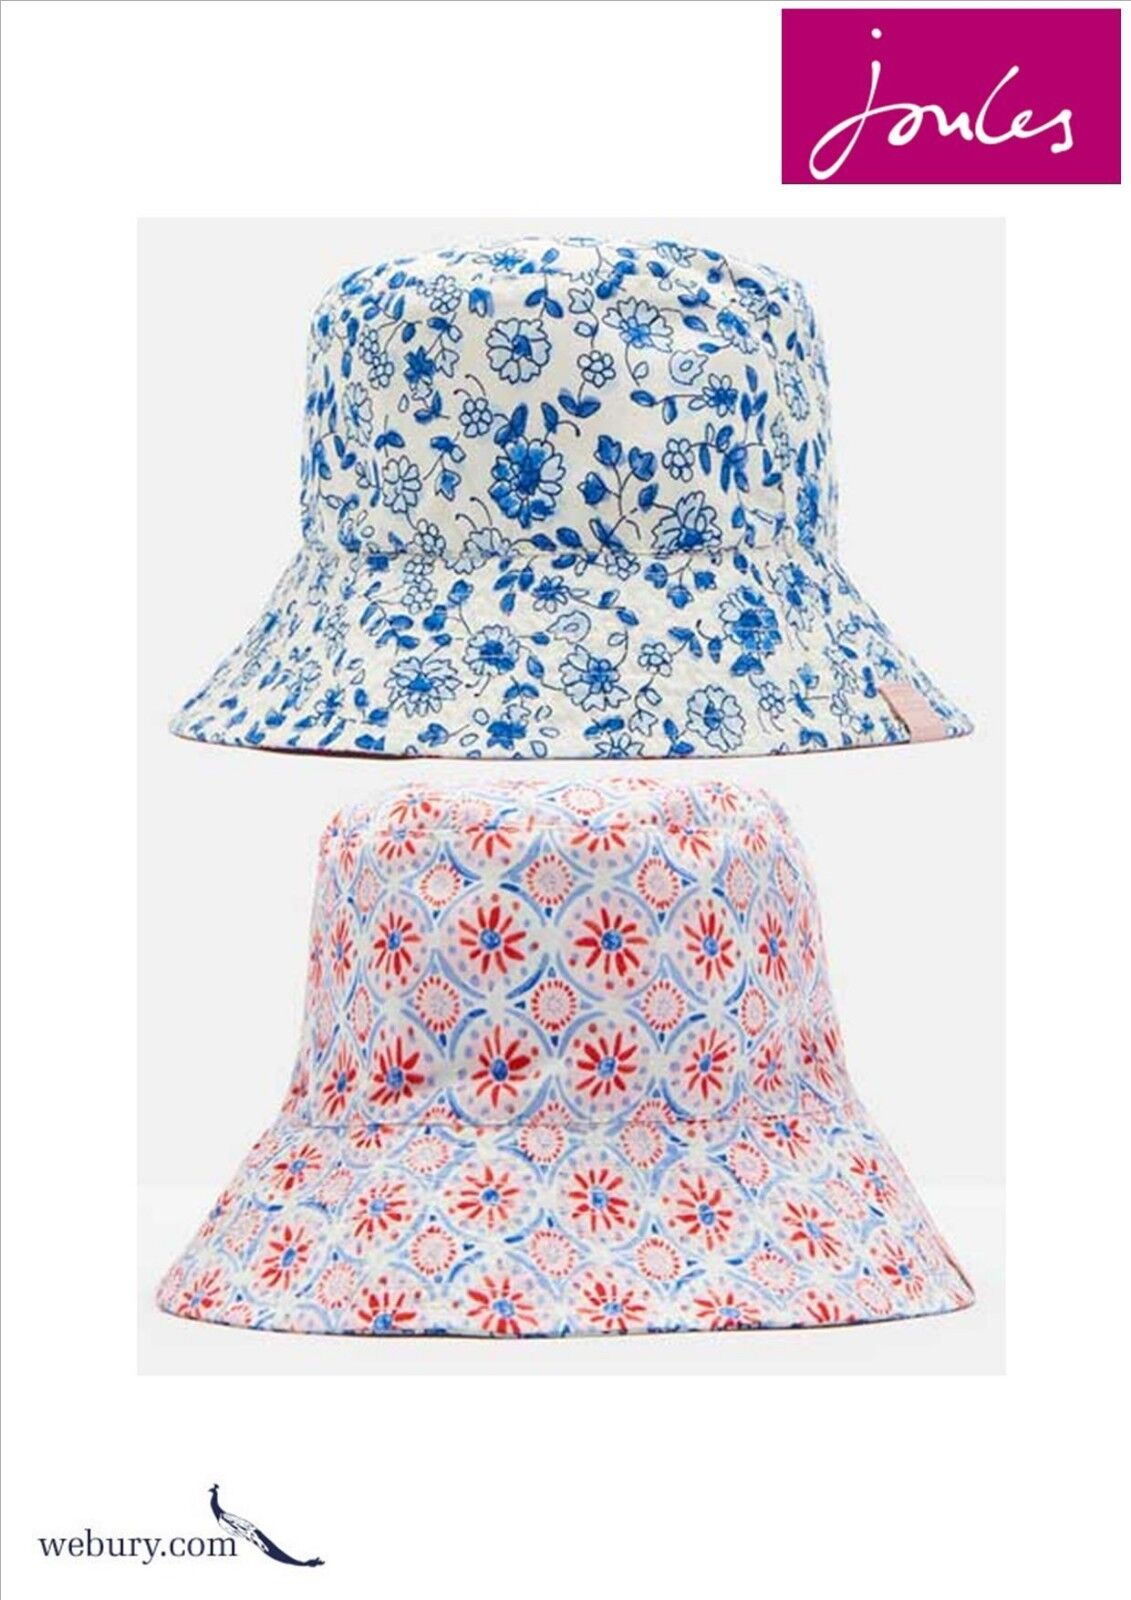 2aff1a7e1 Joules Folkestone Ditsy Sunseeker Reversible Girls Sun Hat Size 4-7 years